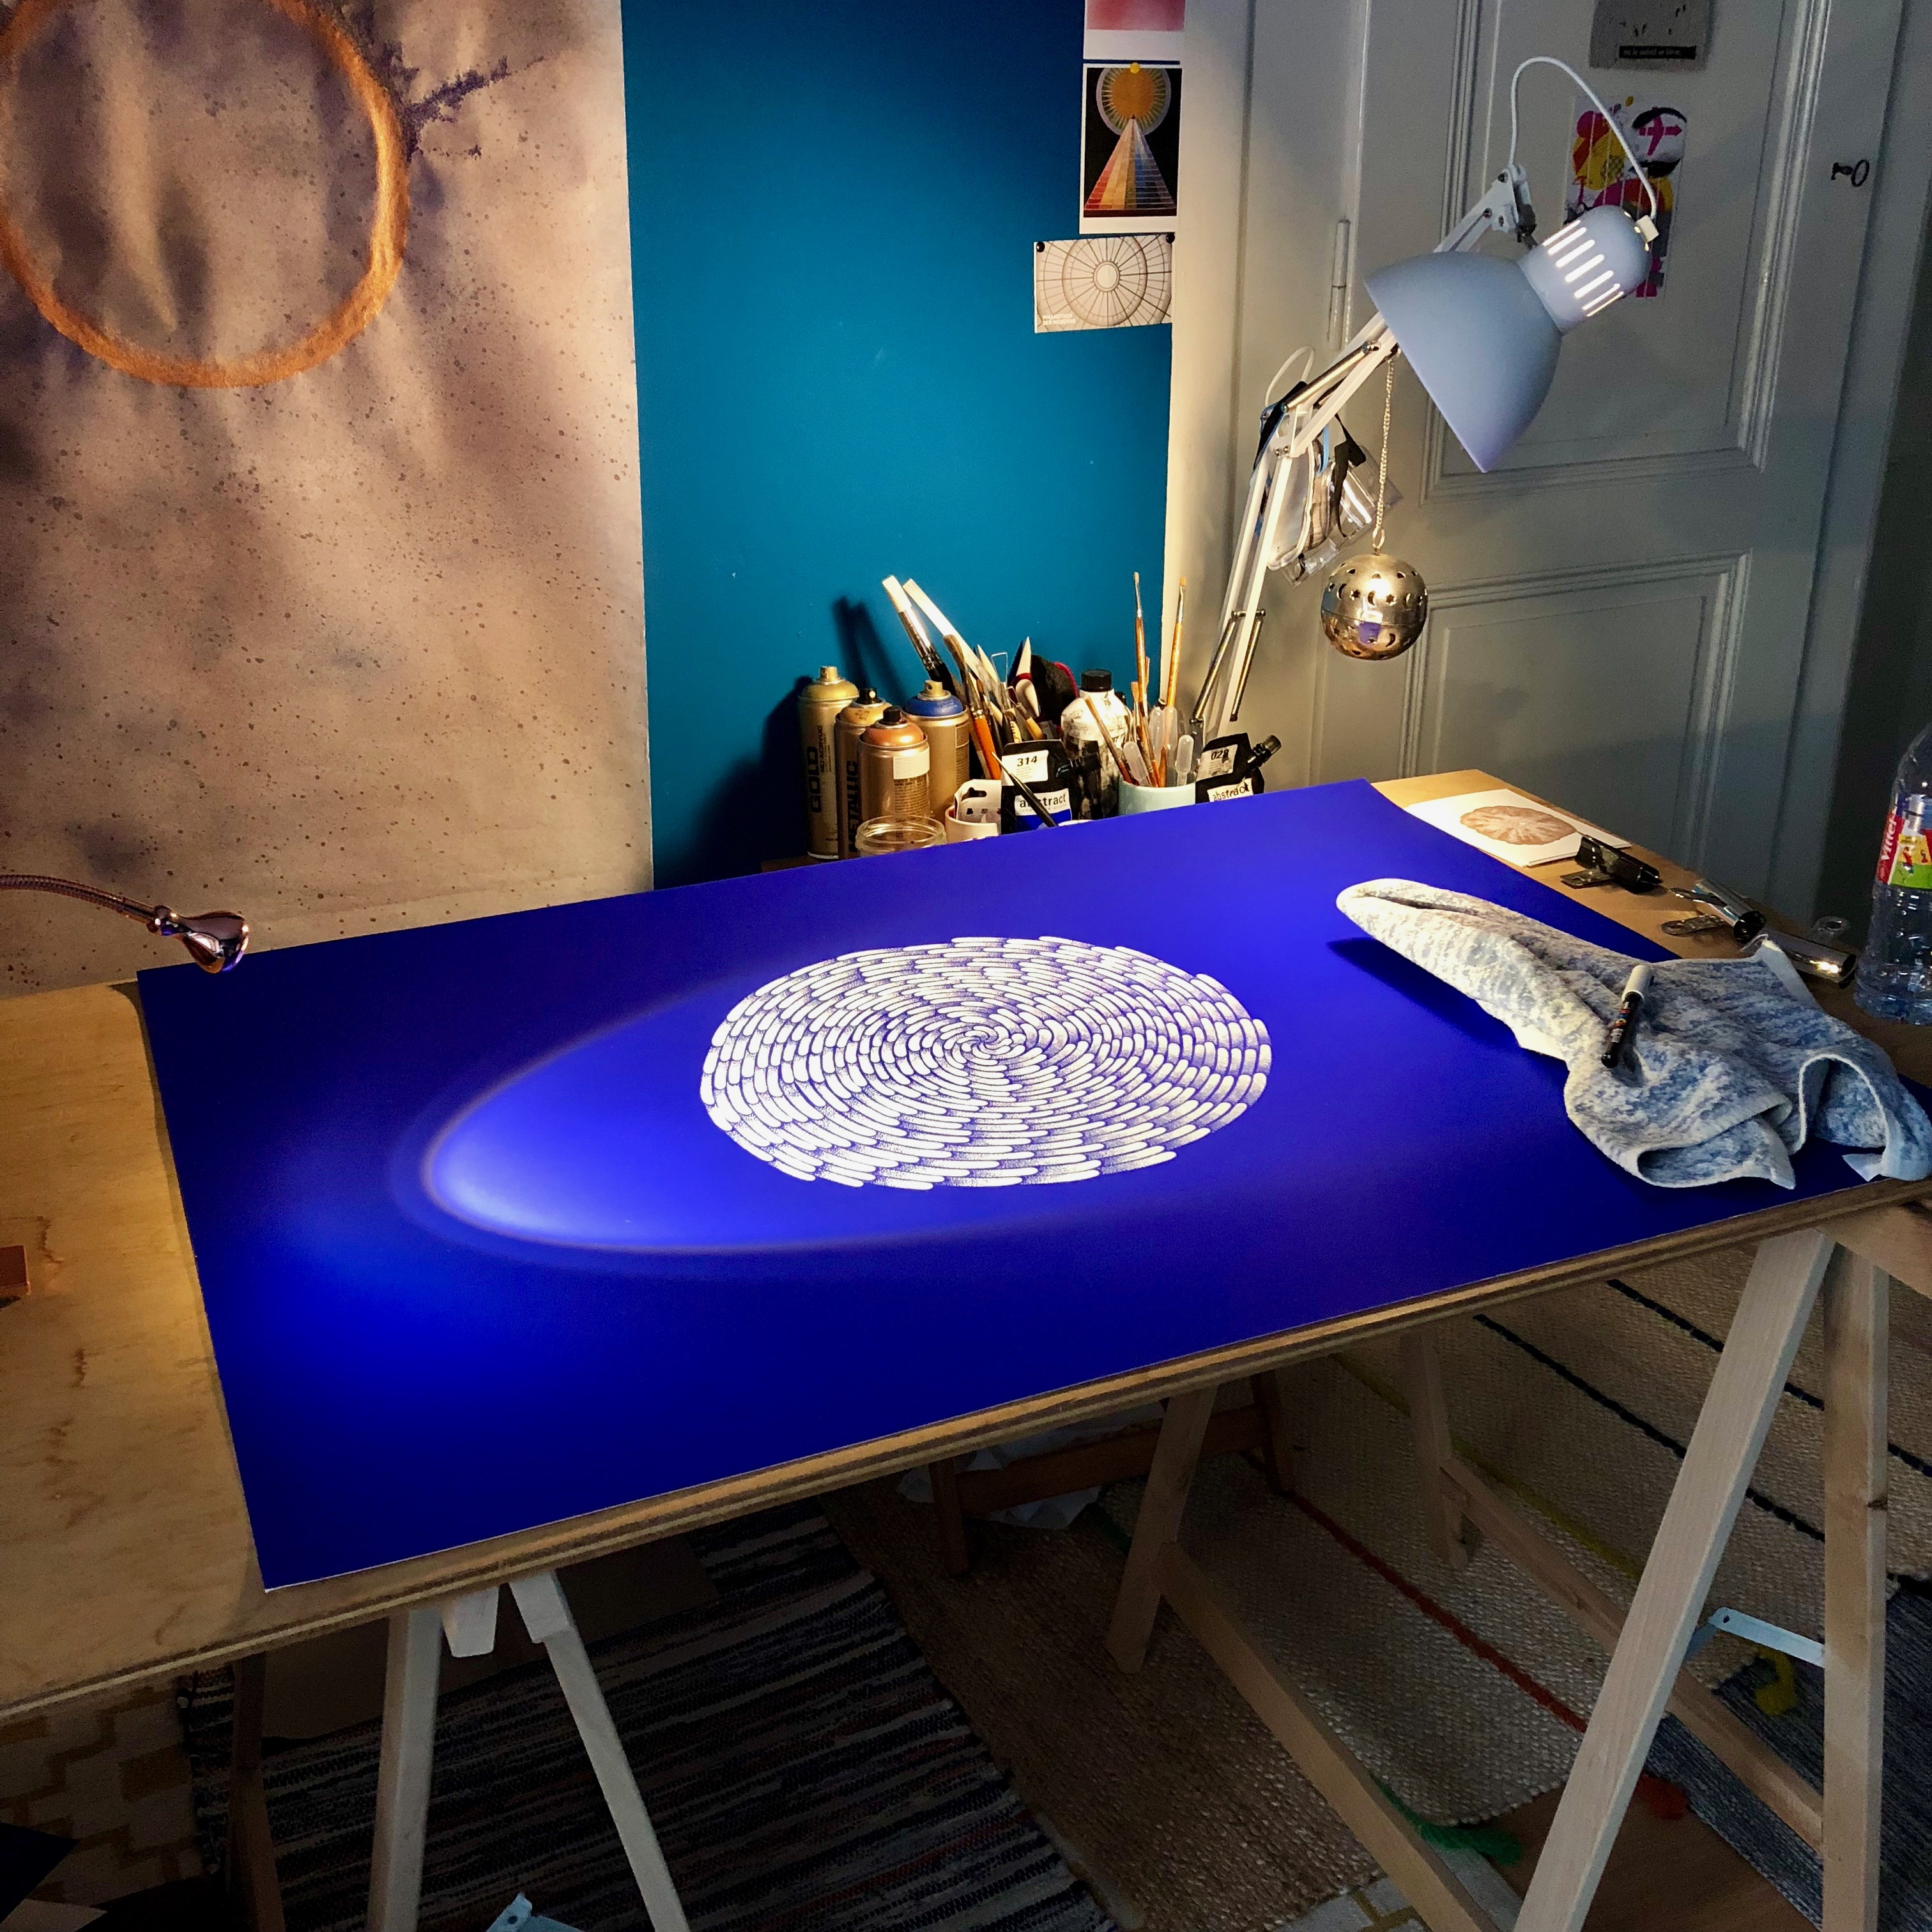 art-studio-geneva-drawing-posca-cosmic-blue-planet-paper-arjowiggings-art-studio-eaux-vives-art-geneva